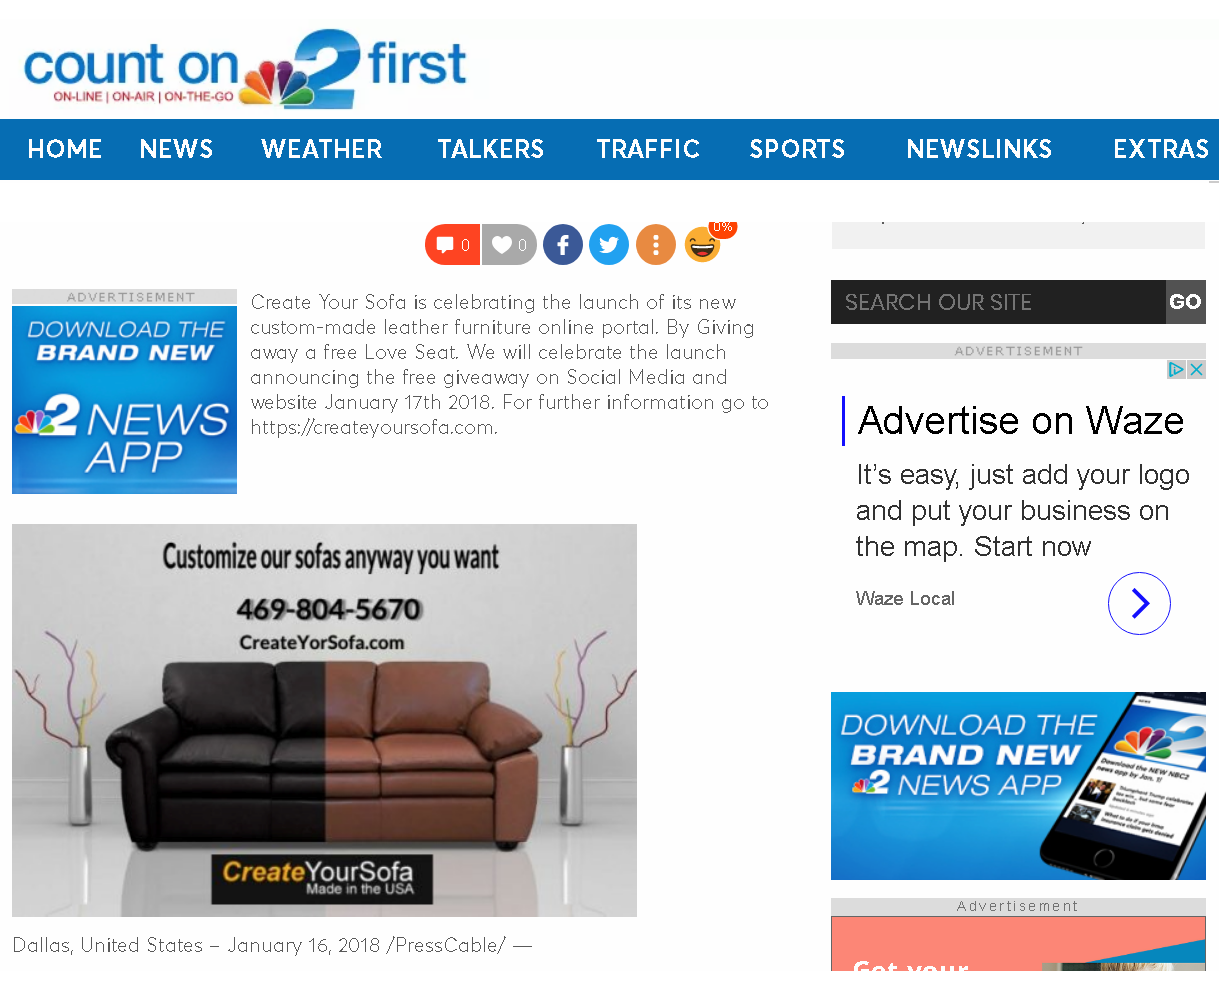 Loveseat Giveaway Count on NBC2 first | Create Your Sofa